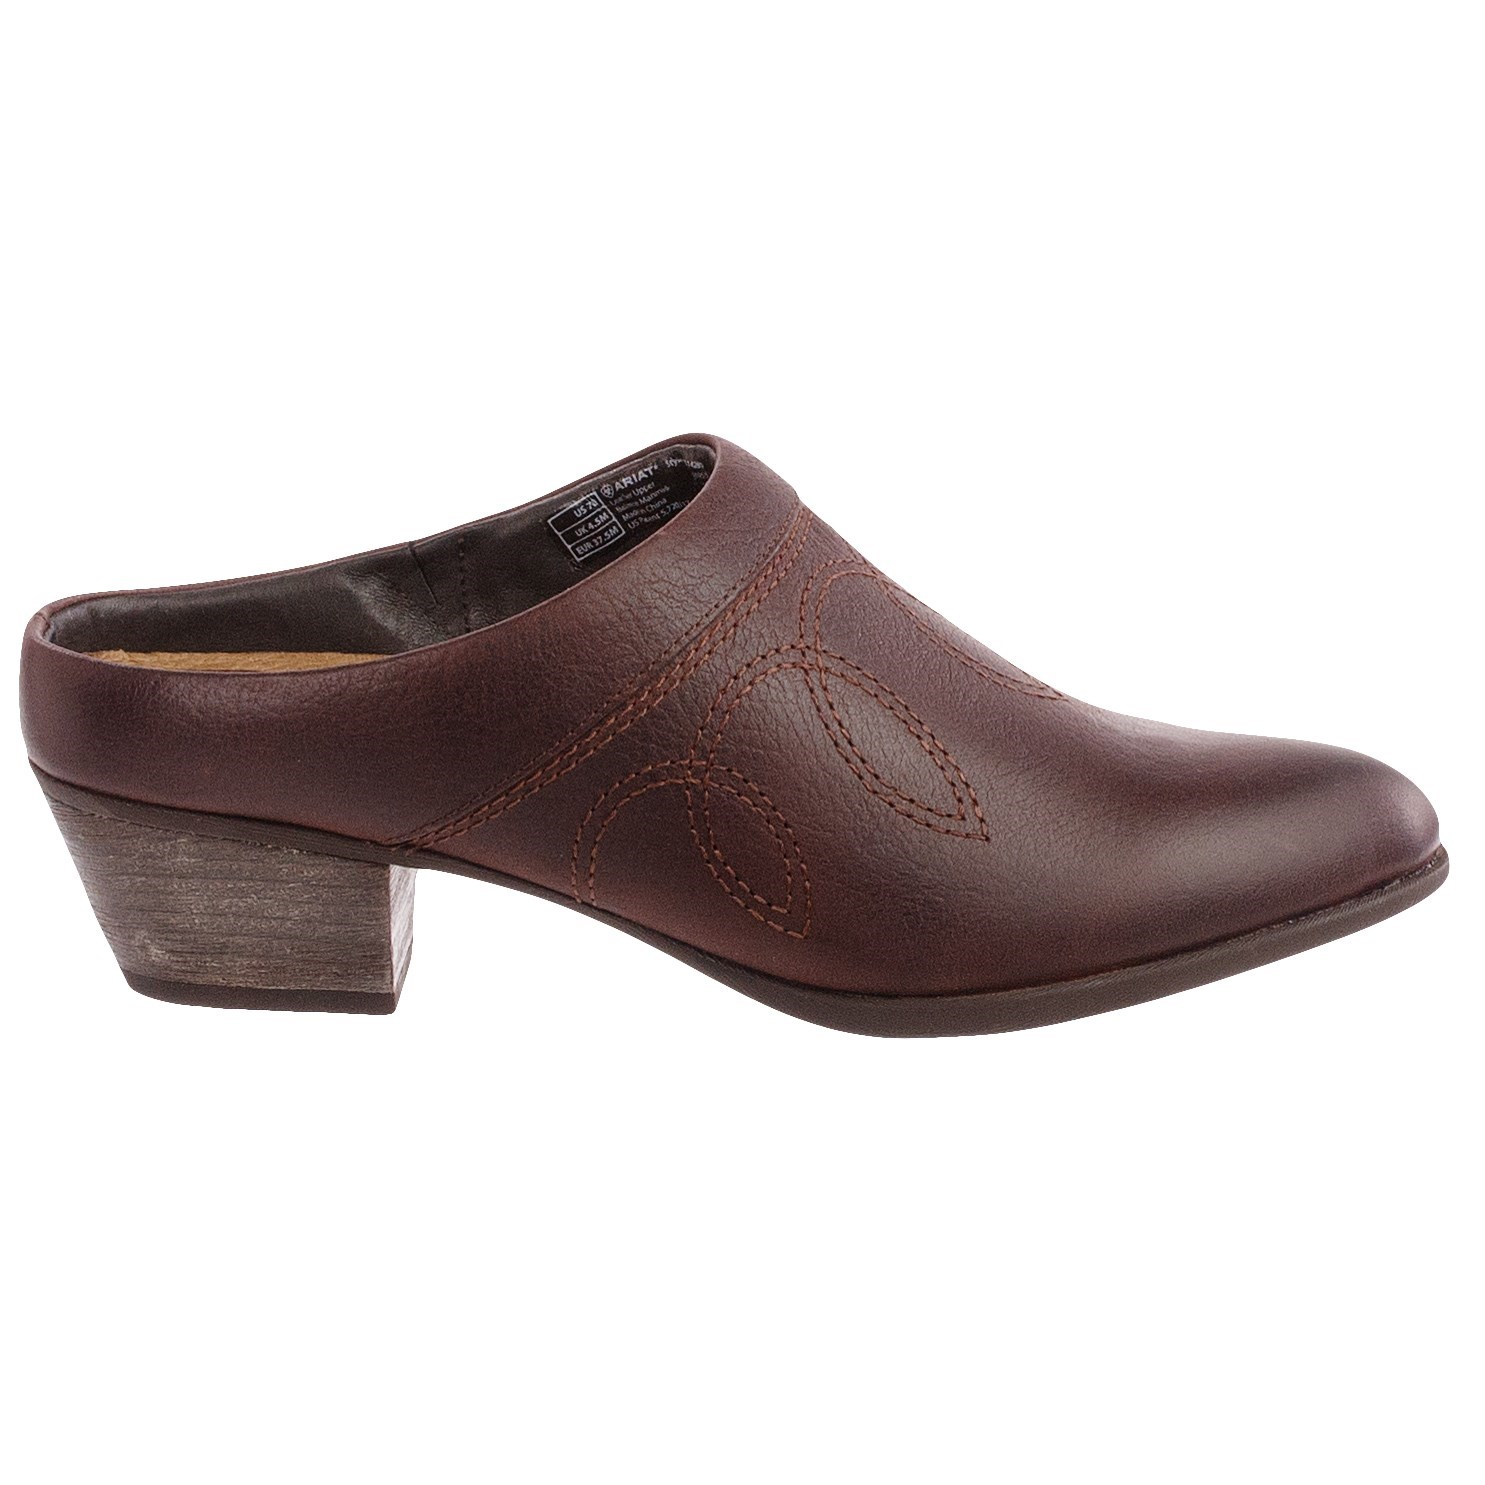 Ariat Clogs For 28 Images Ariat Bradford Leather Clogs For Save 47 Ariat Womens Clogs